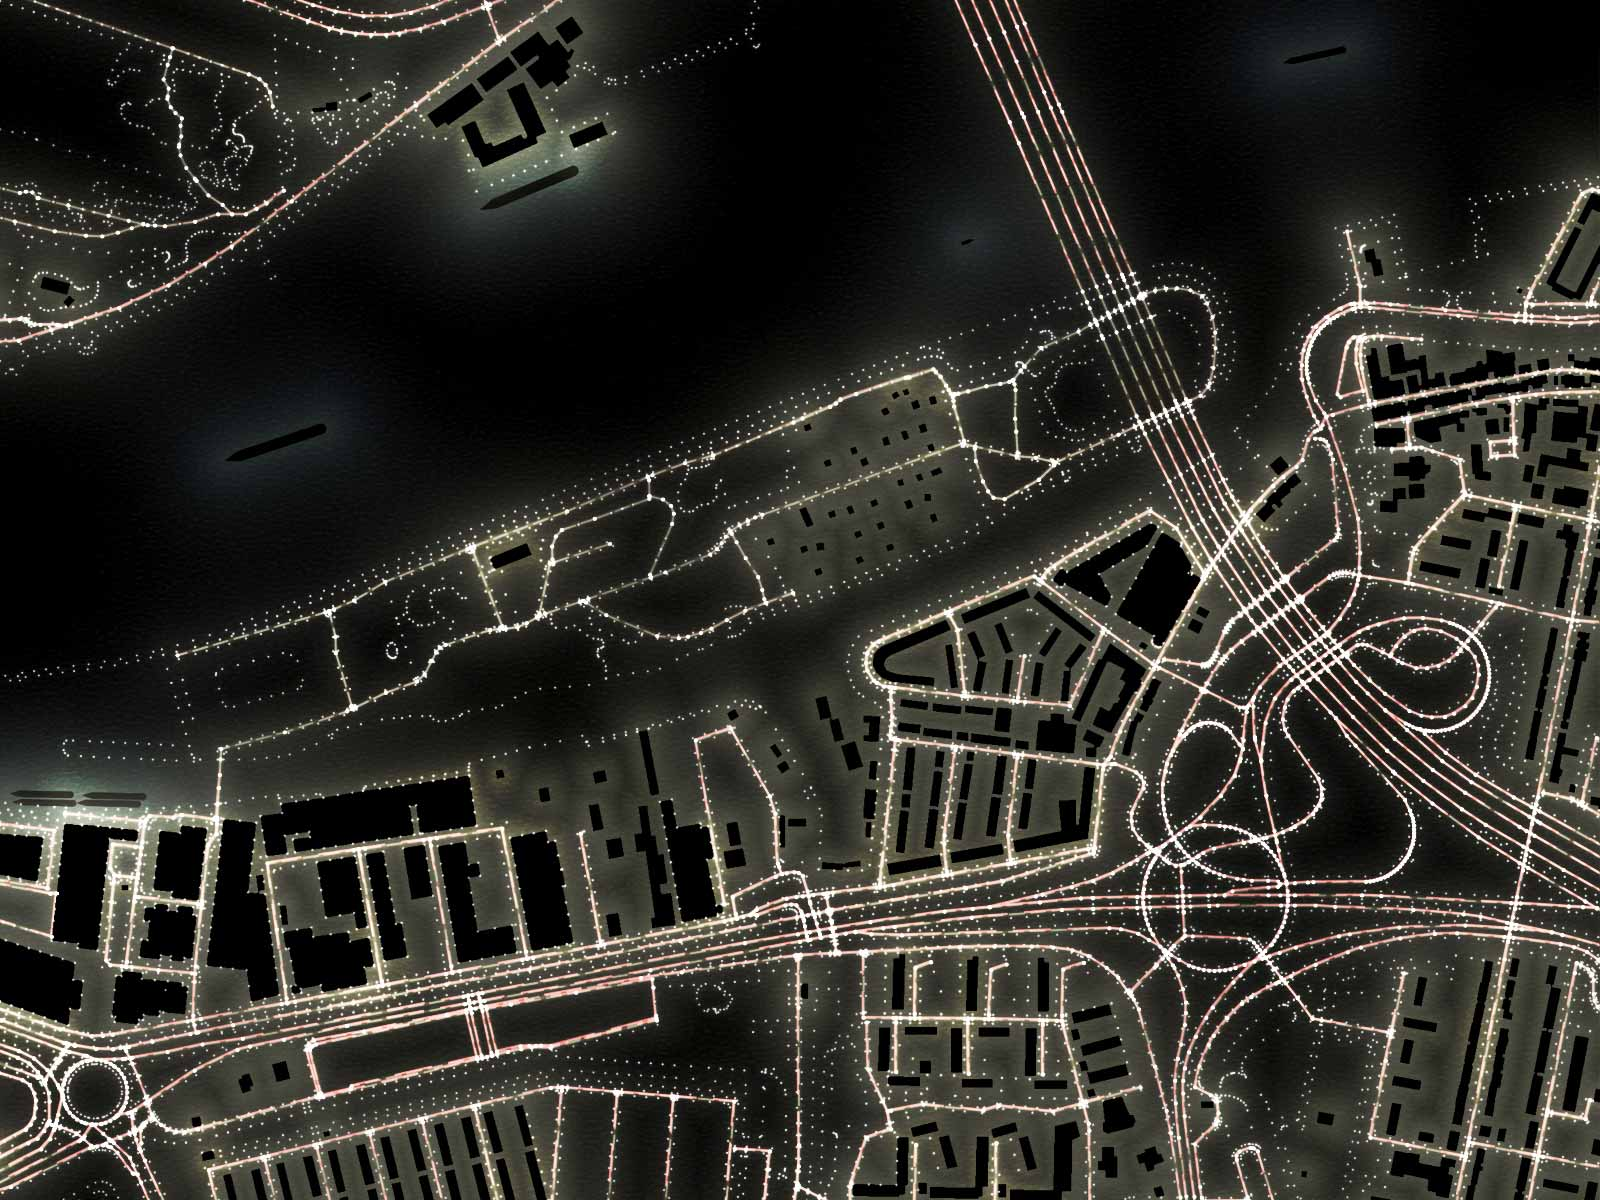 Detail of the Light Map of Rotterdam, zoomed in on Brienenoord Island and surroundings including the bridge with the same name and the adjacent traffic junction